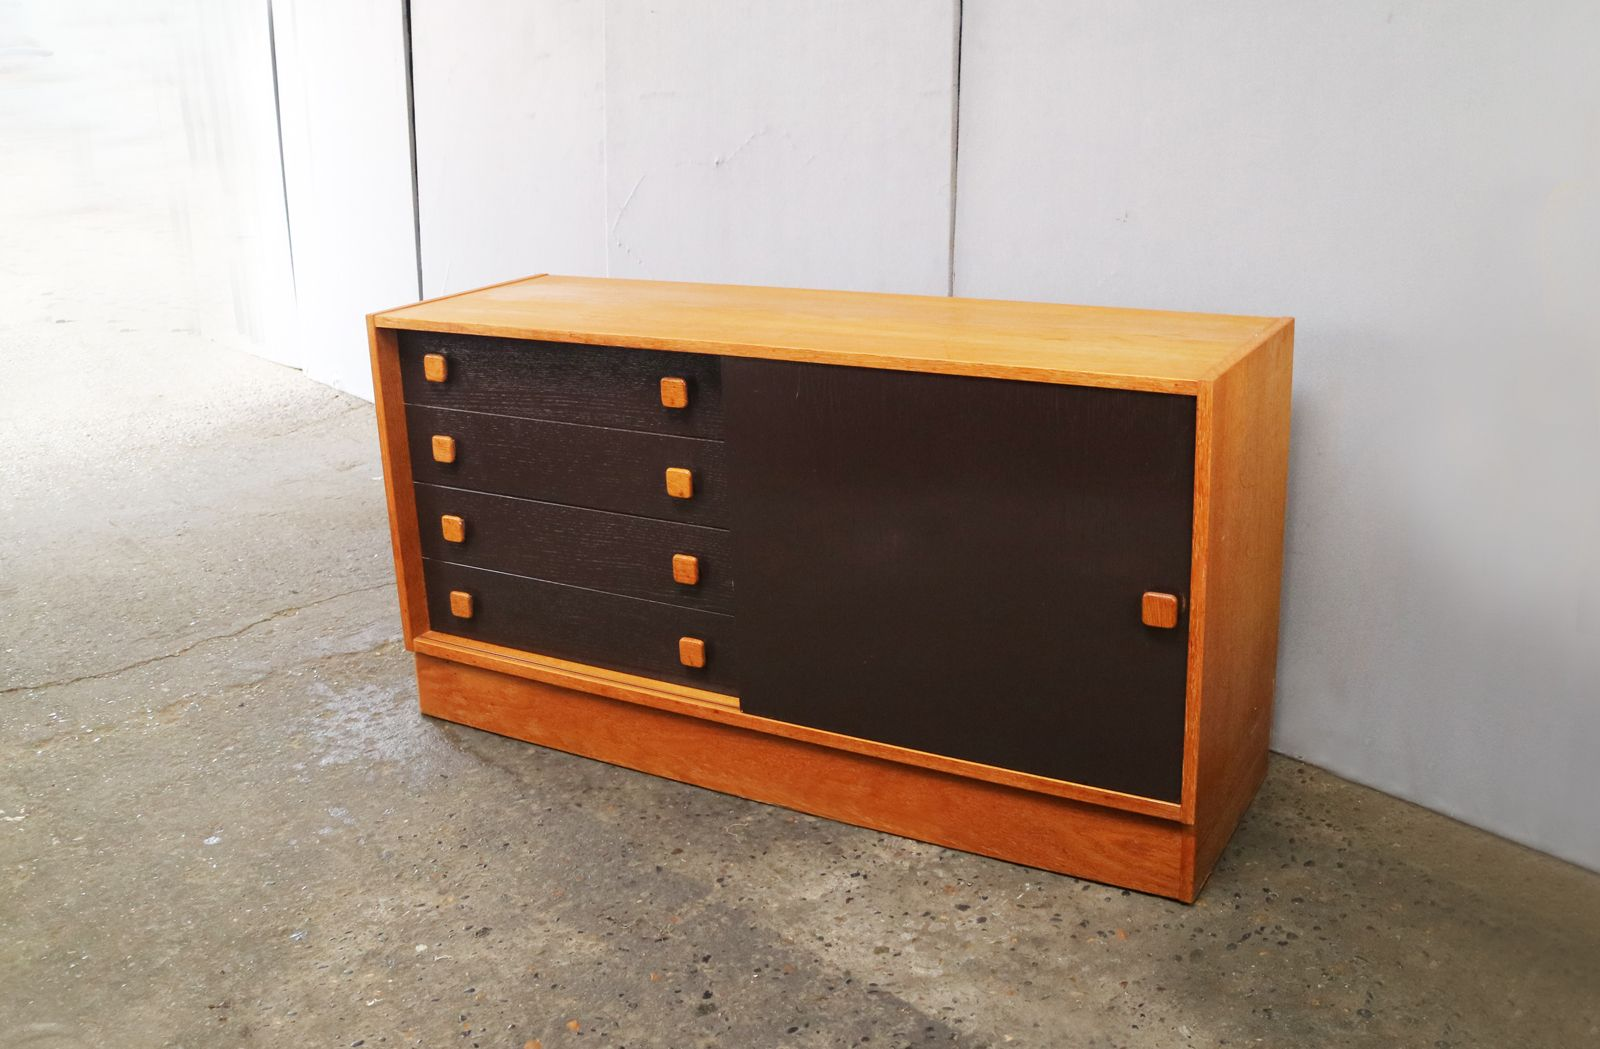 Danish Teak Credenza : Danish teak credenza from domino mobler s for sale at pamono